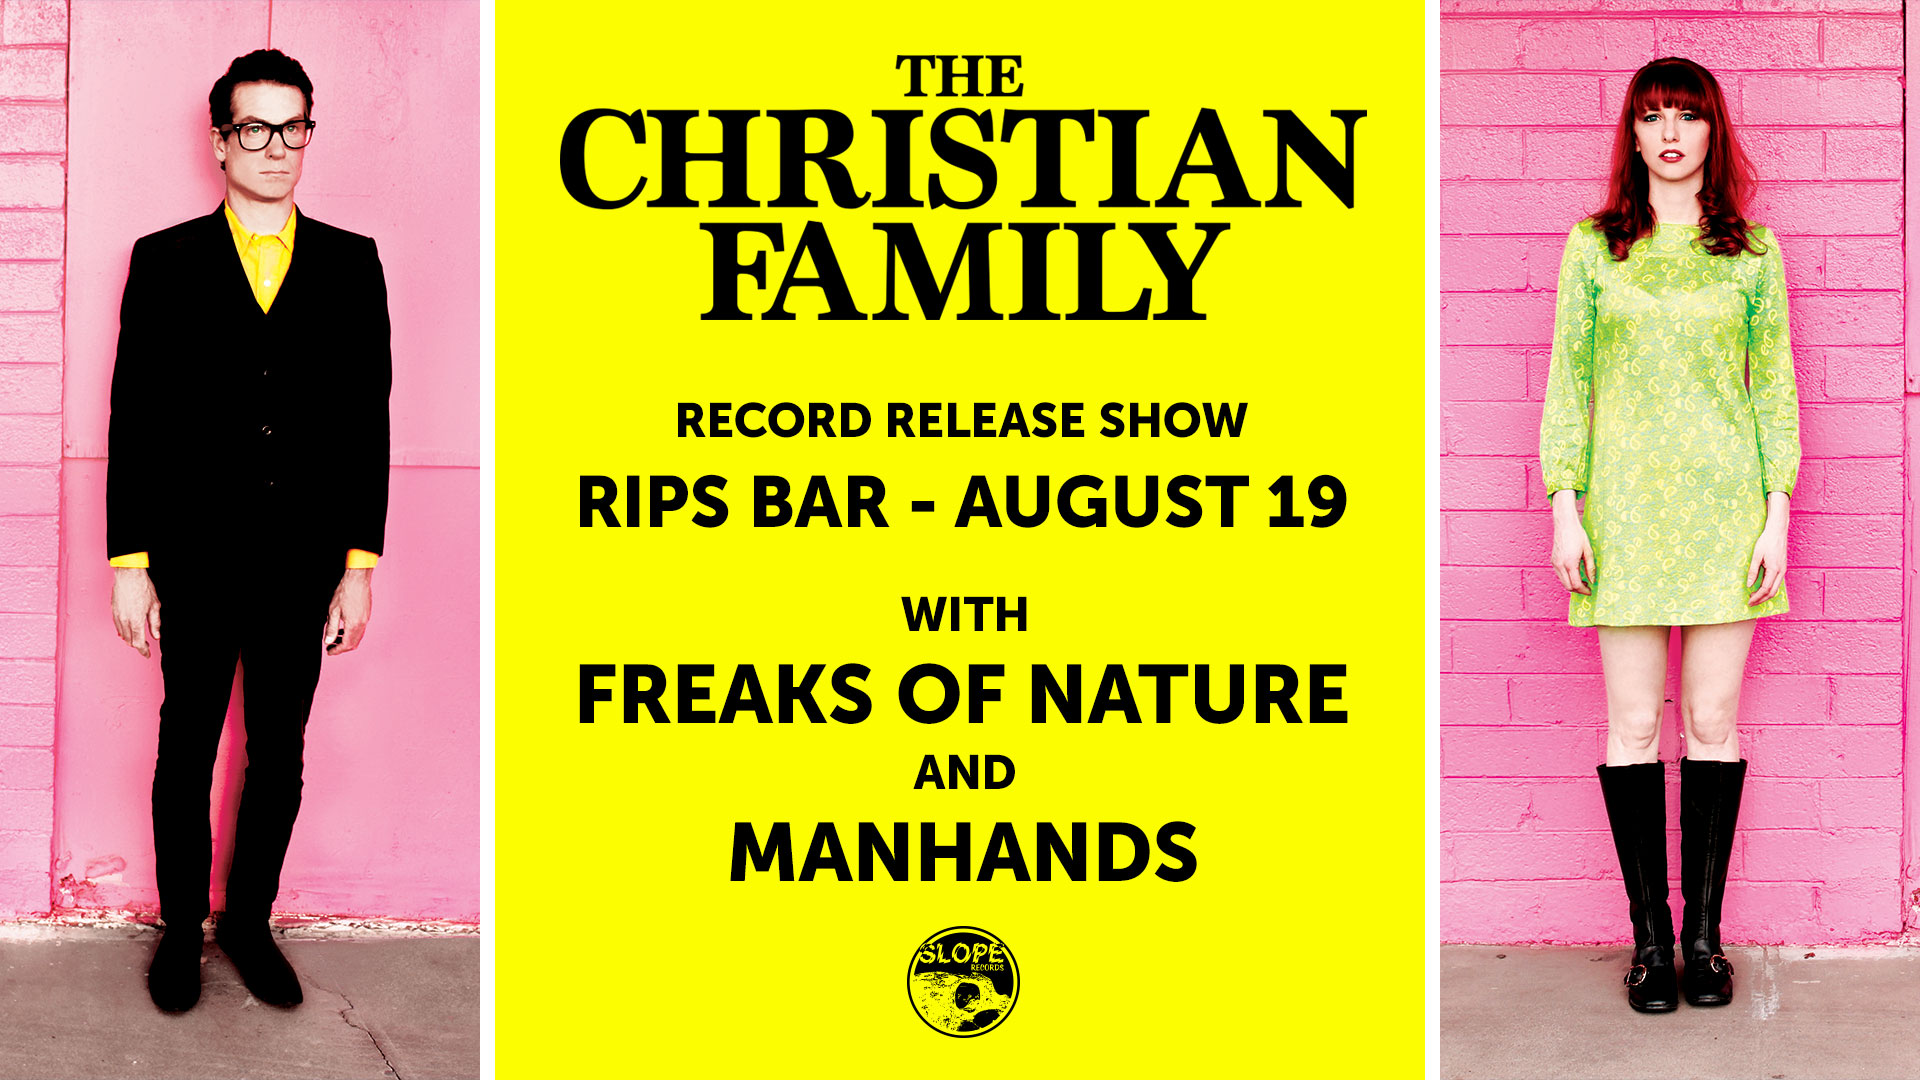 The Christian Family Record Release @ Rips Bar 8/19